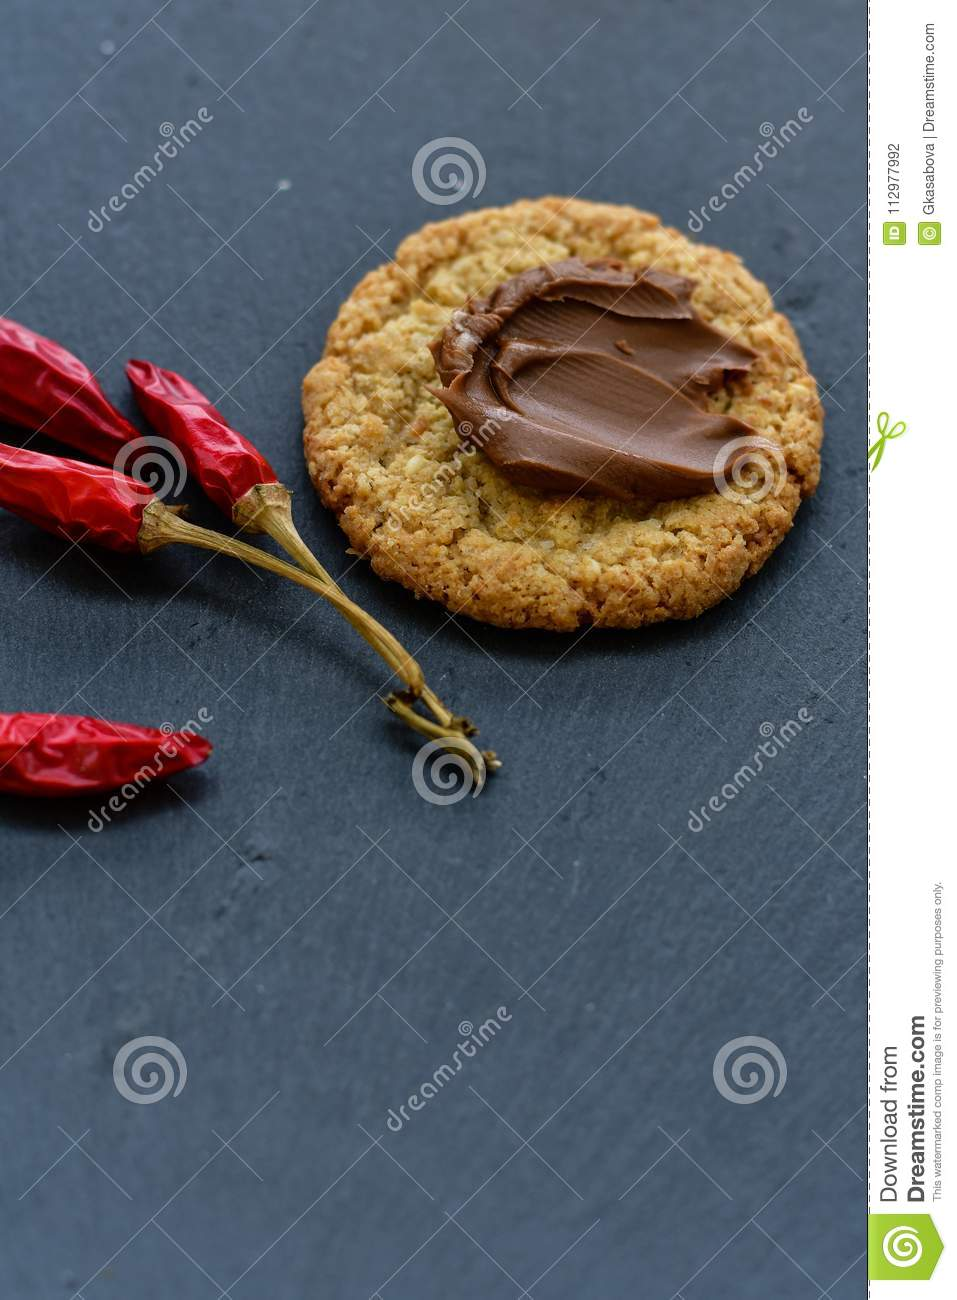 Cookies and red hot chili peppers